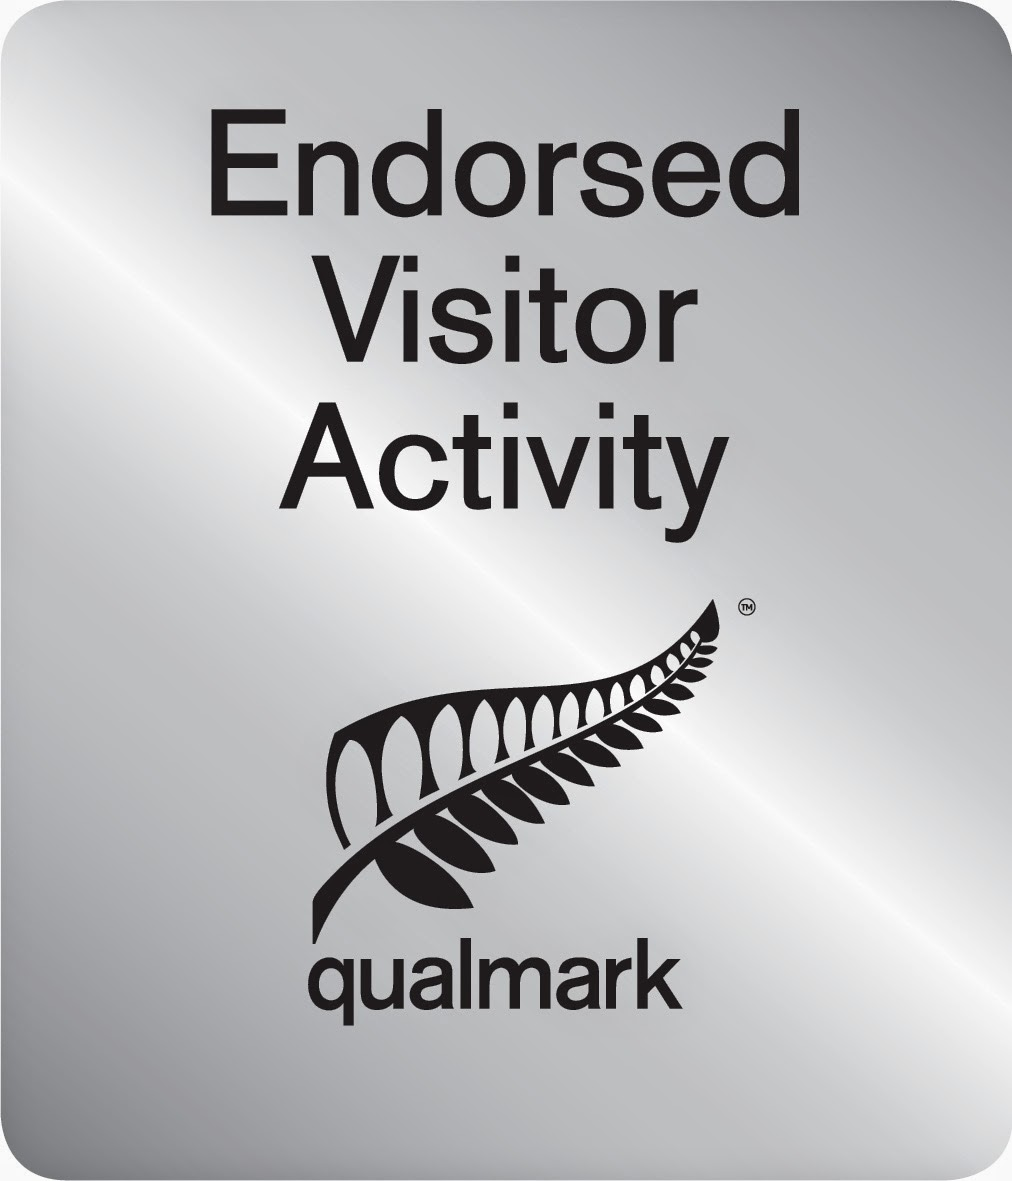 We've joined Qualmark!